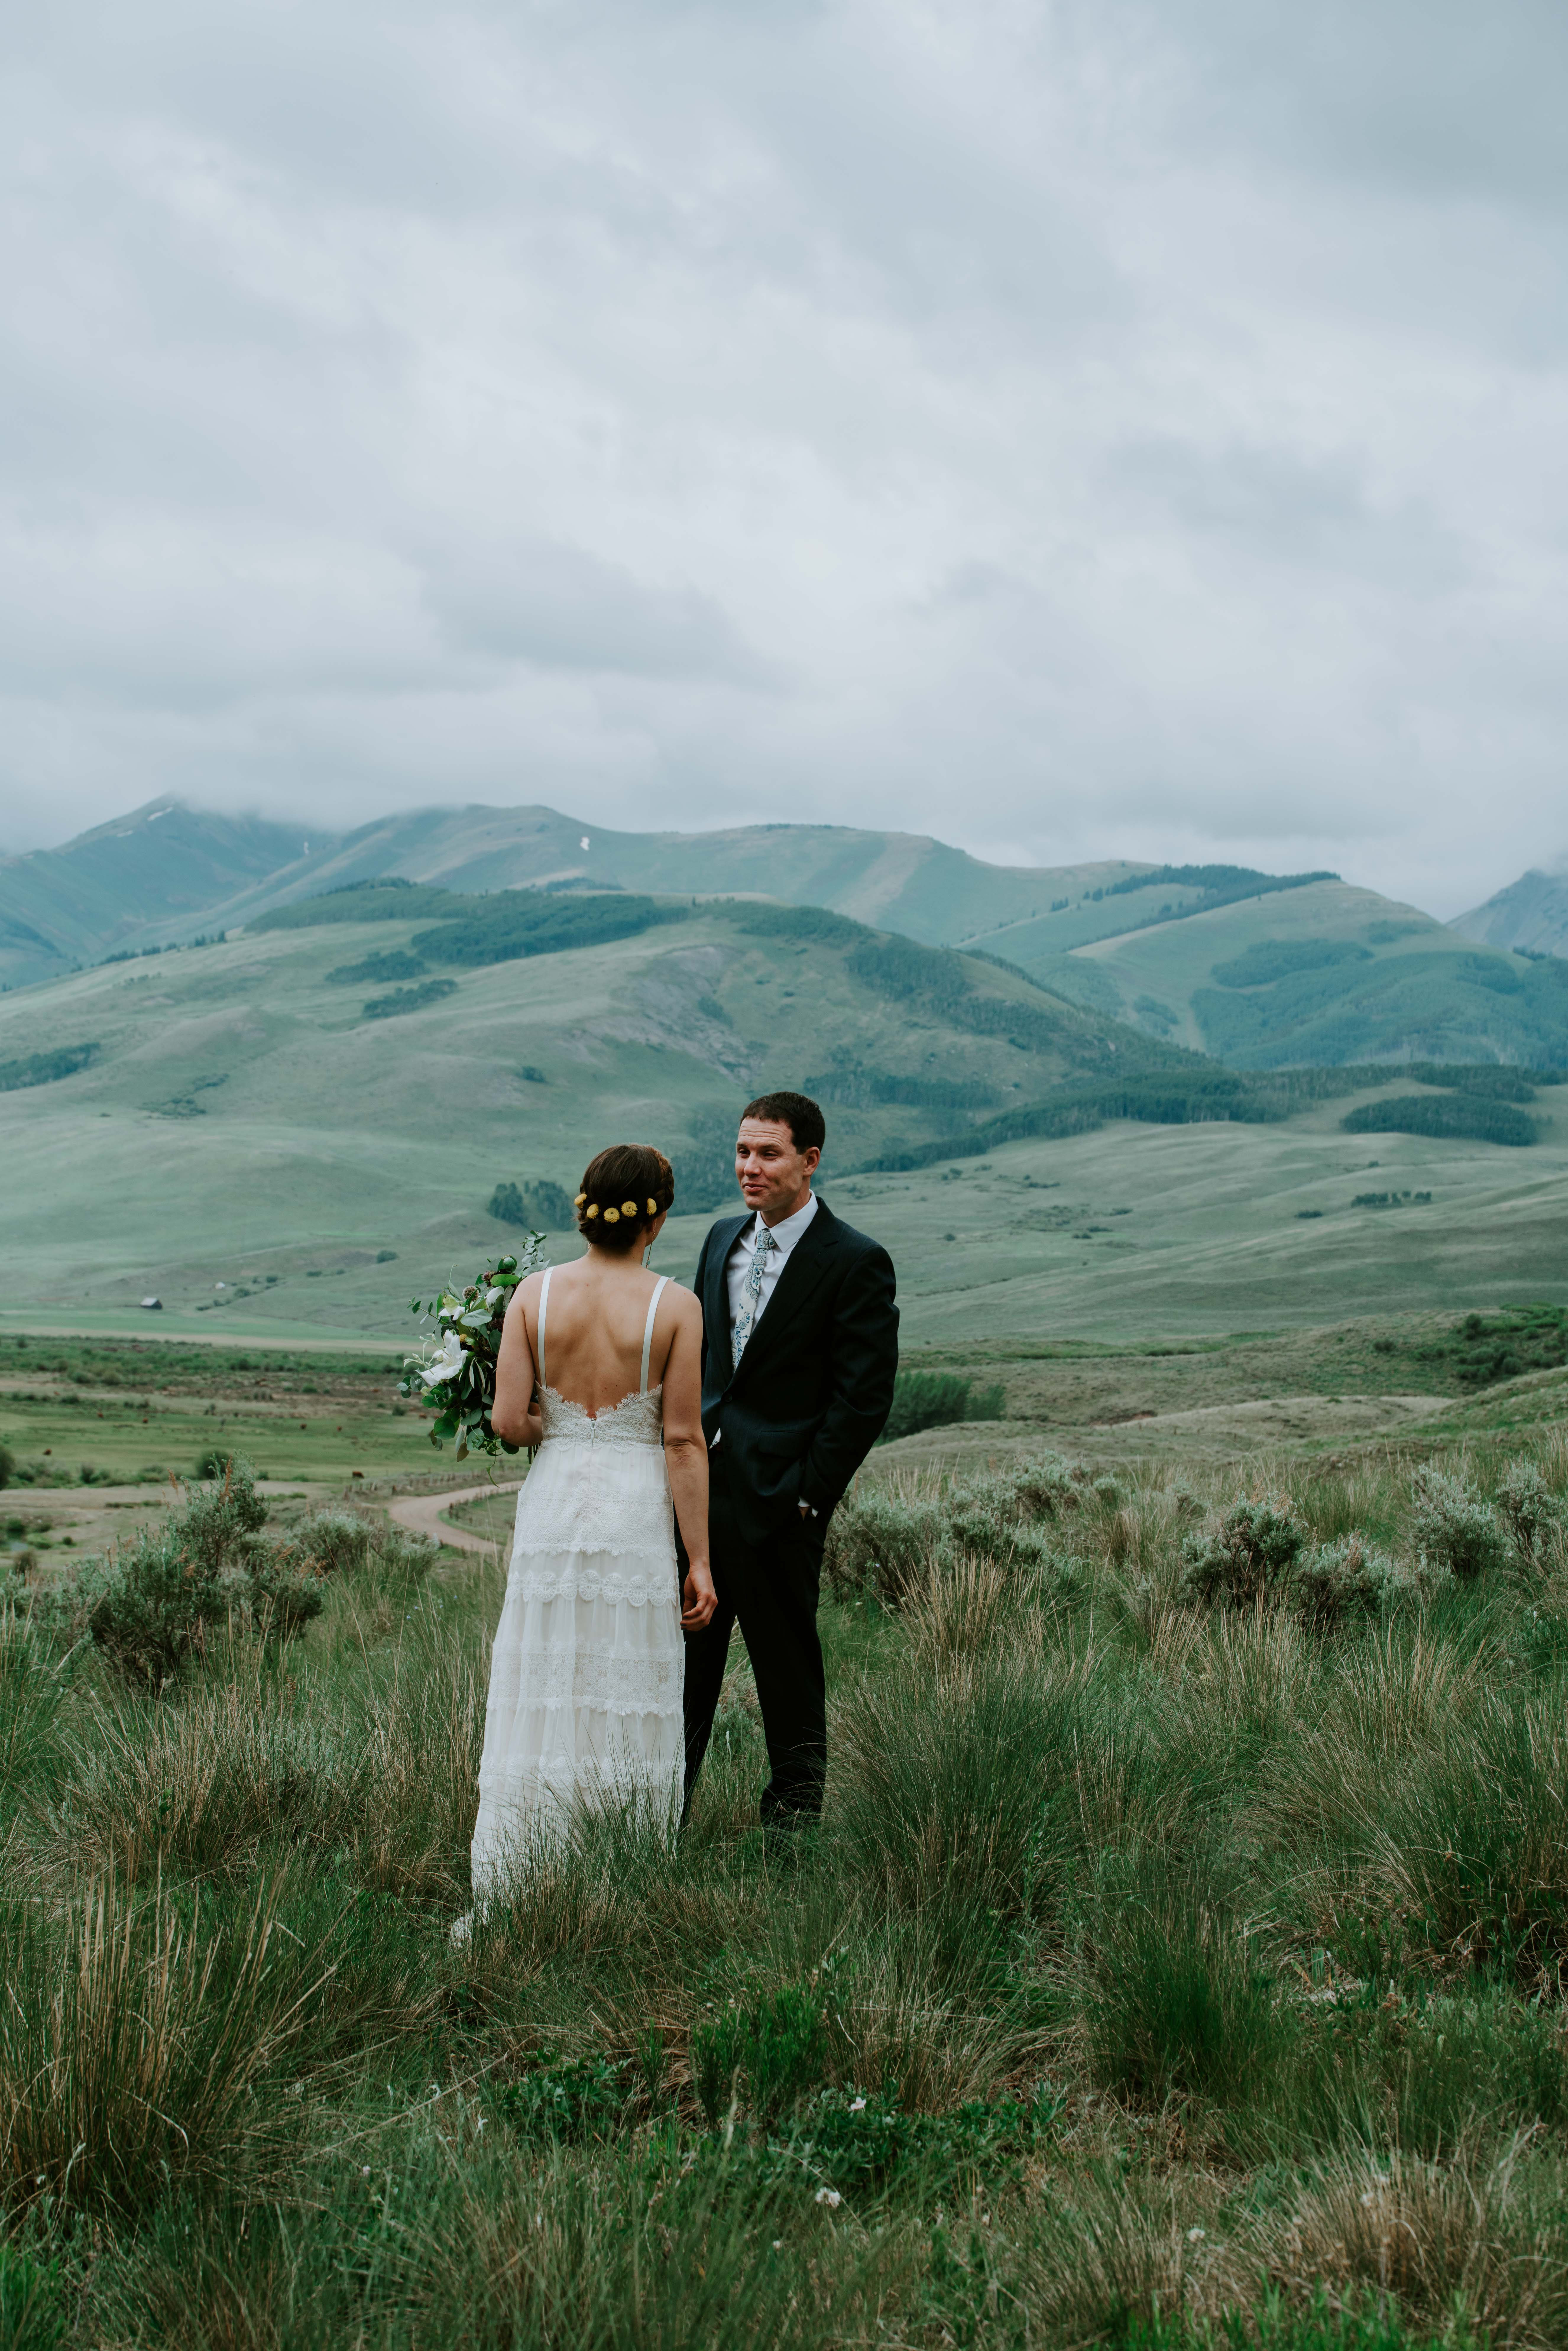 Laura_Alexe_Wedding_Crested_Butte_MegONeillPhotography__180616_34